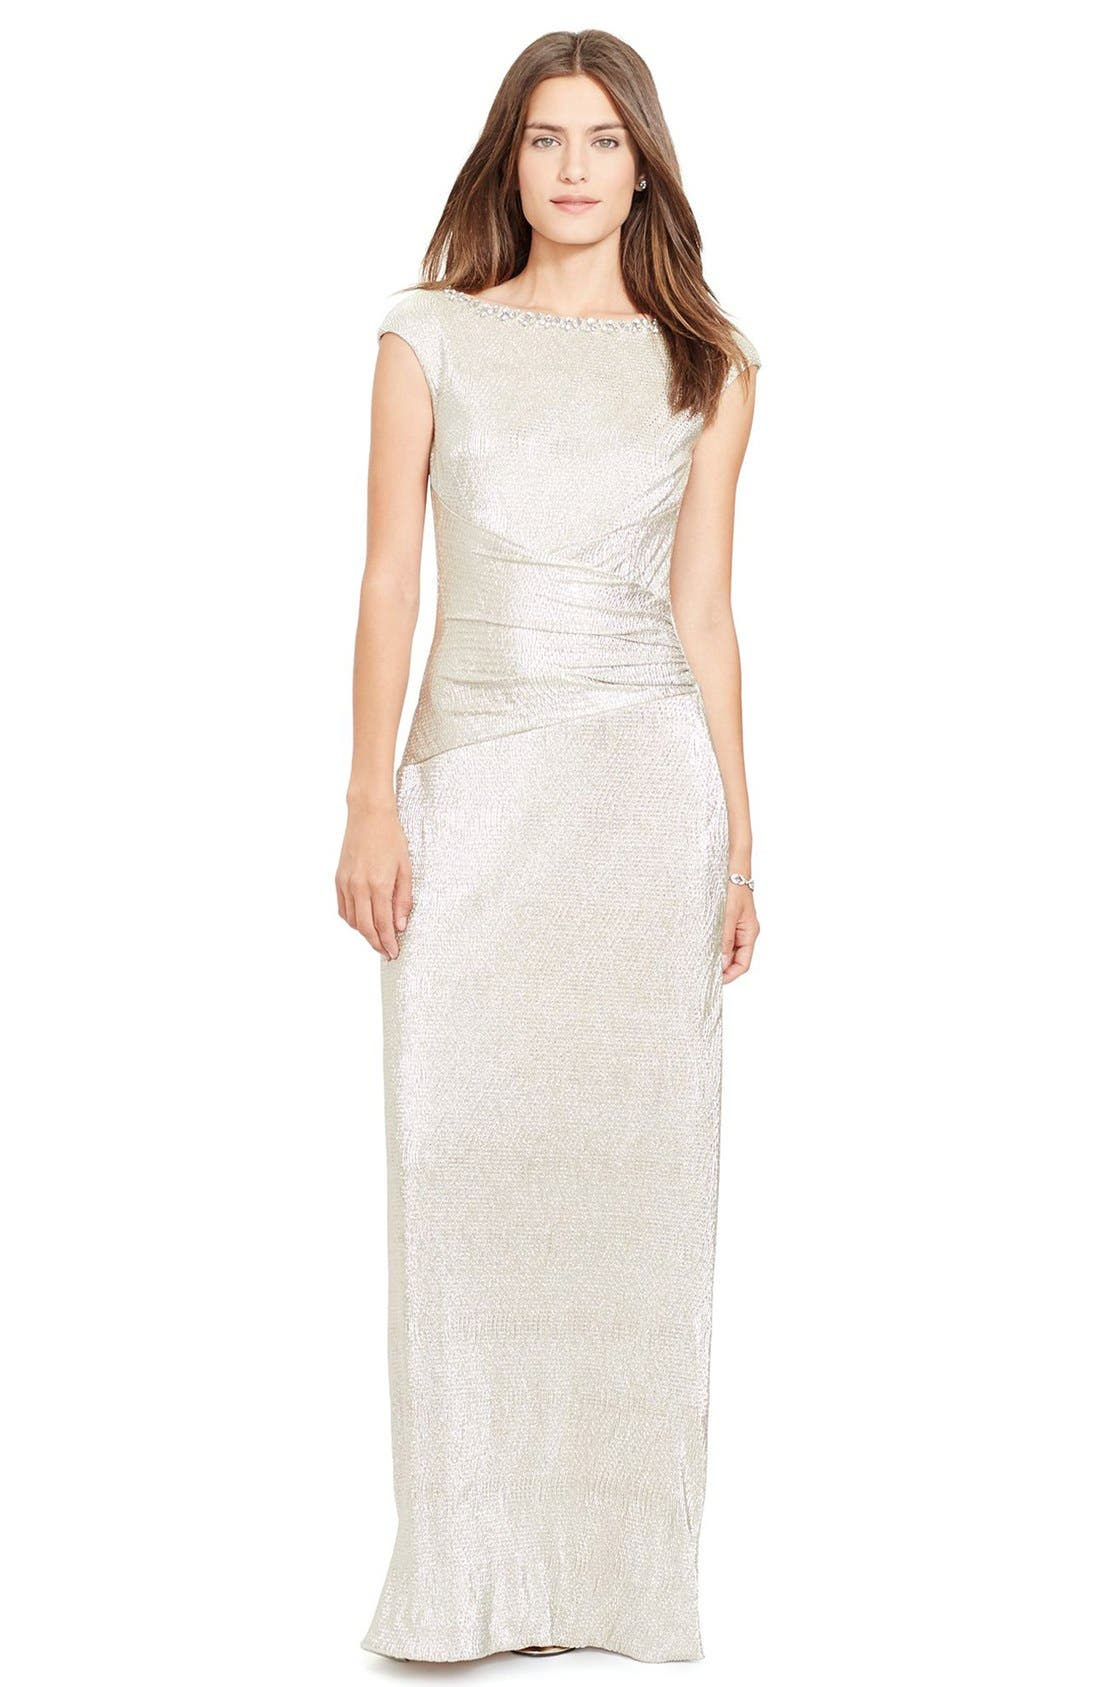 Alternate Image 1 Selected - Lauren Ralph Lauren Embellished Metallic Knit Column Gown (Regular & Petite)